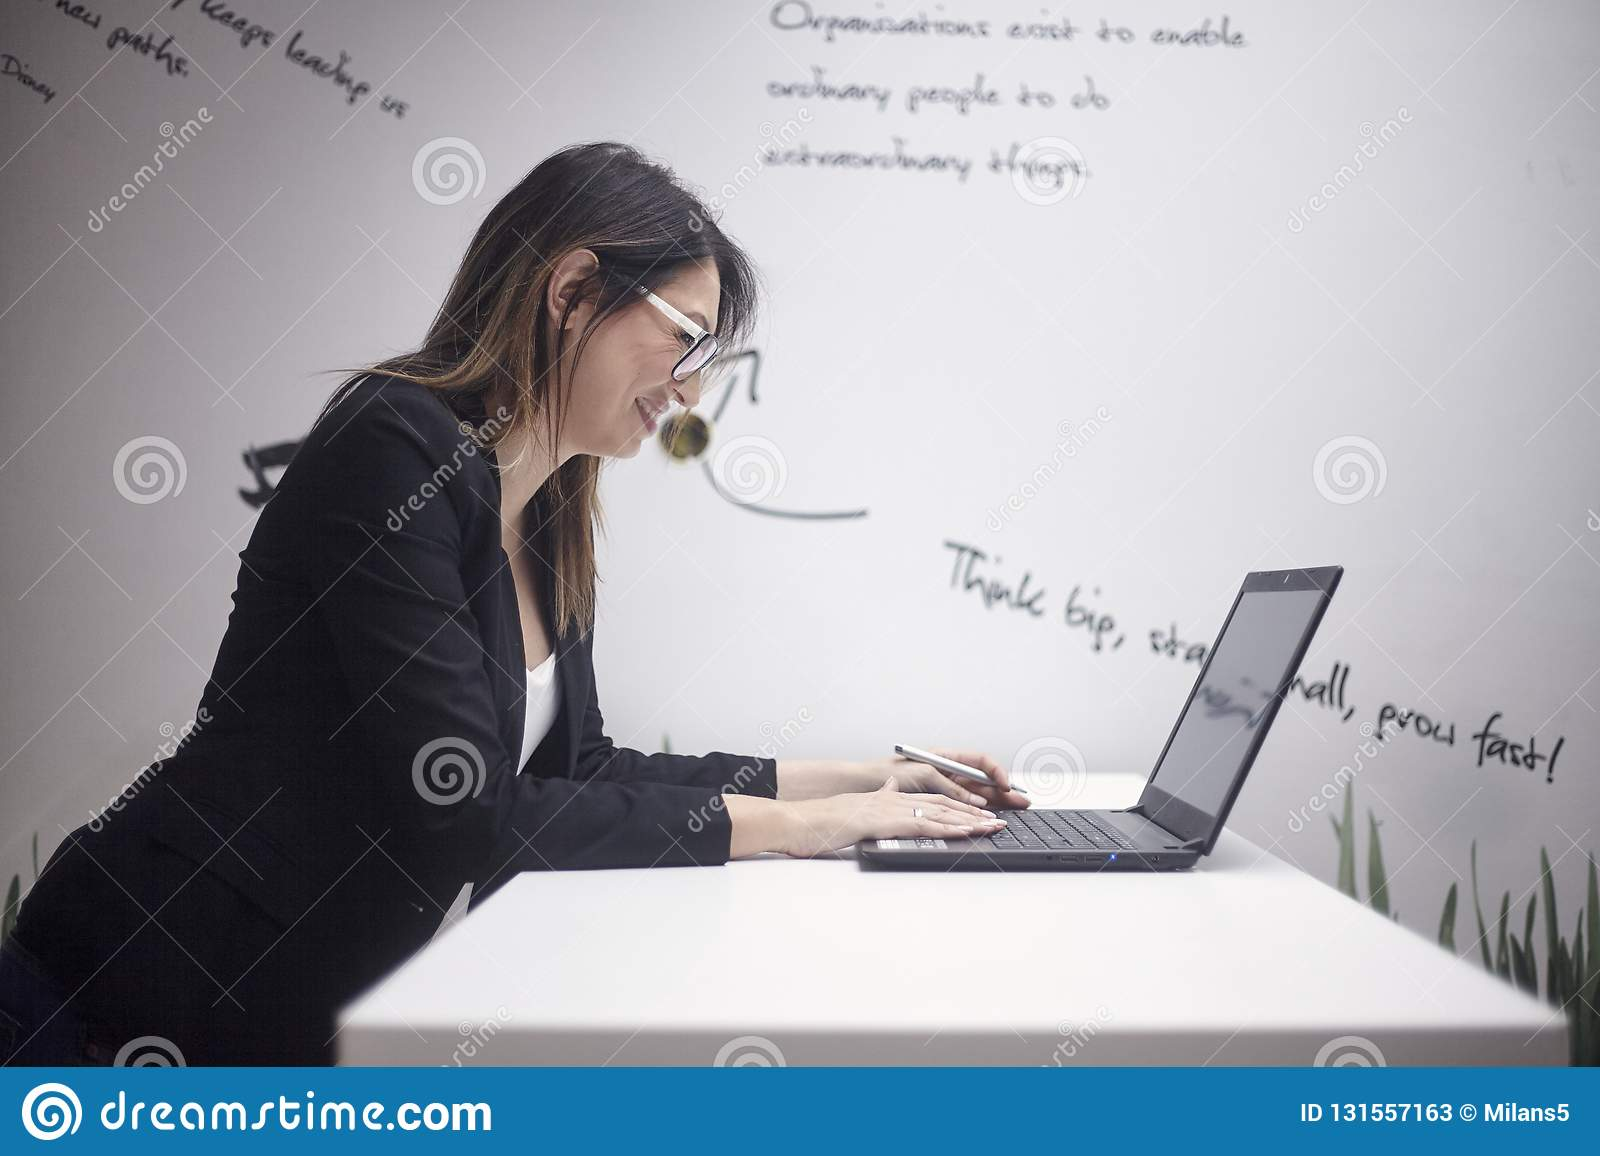 One young smiling woman 30 39 years old side view upper body shot working on laptop wall with creative quotes behind